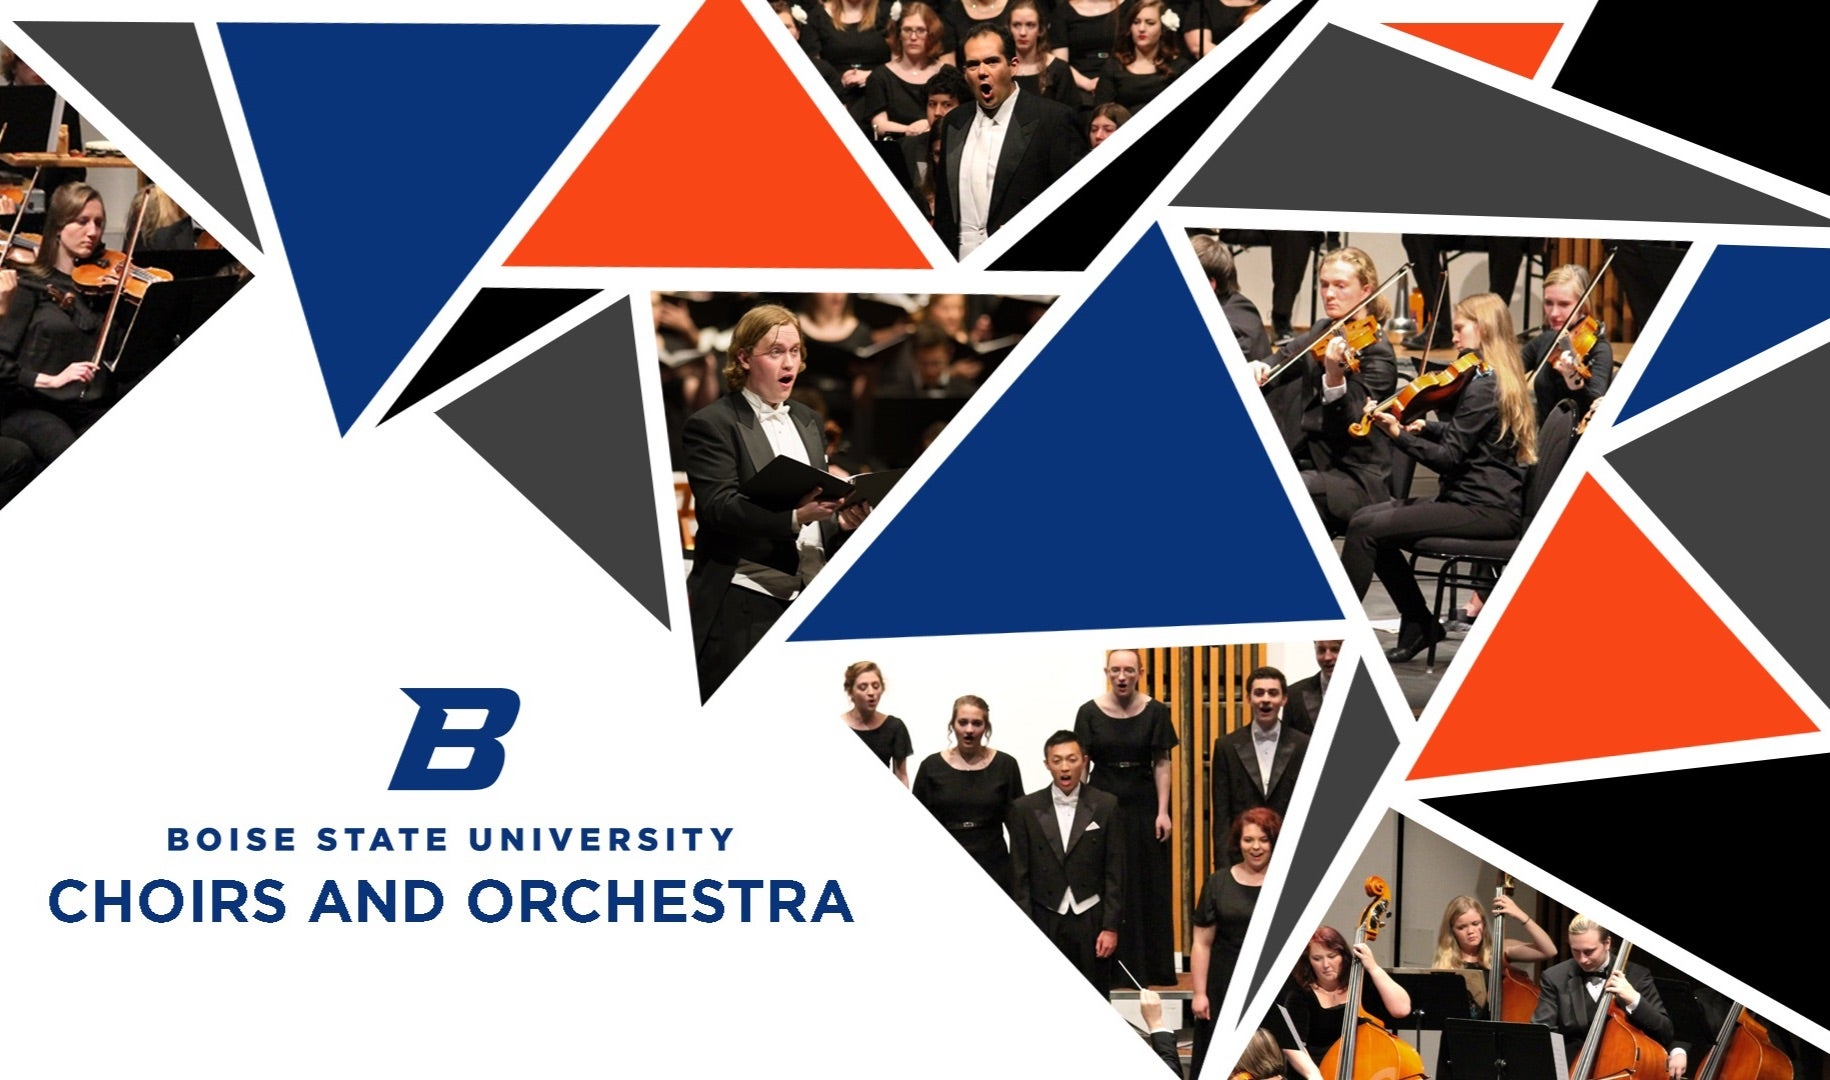 Boise State University Choirs and Orchestra Event Image